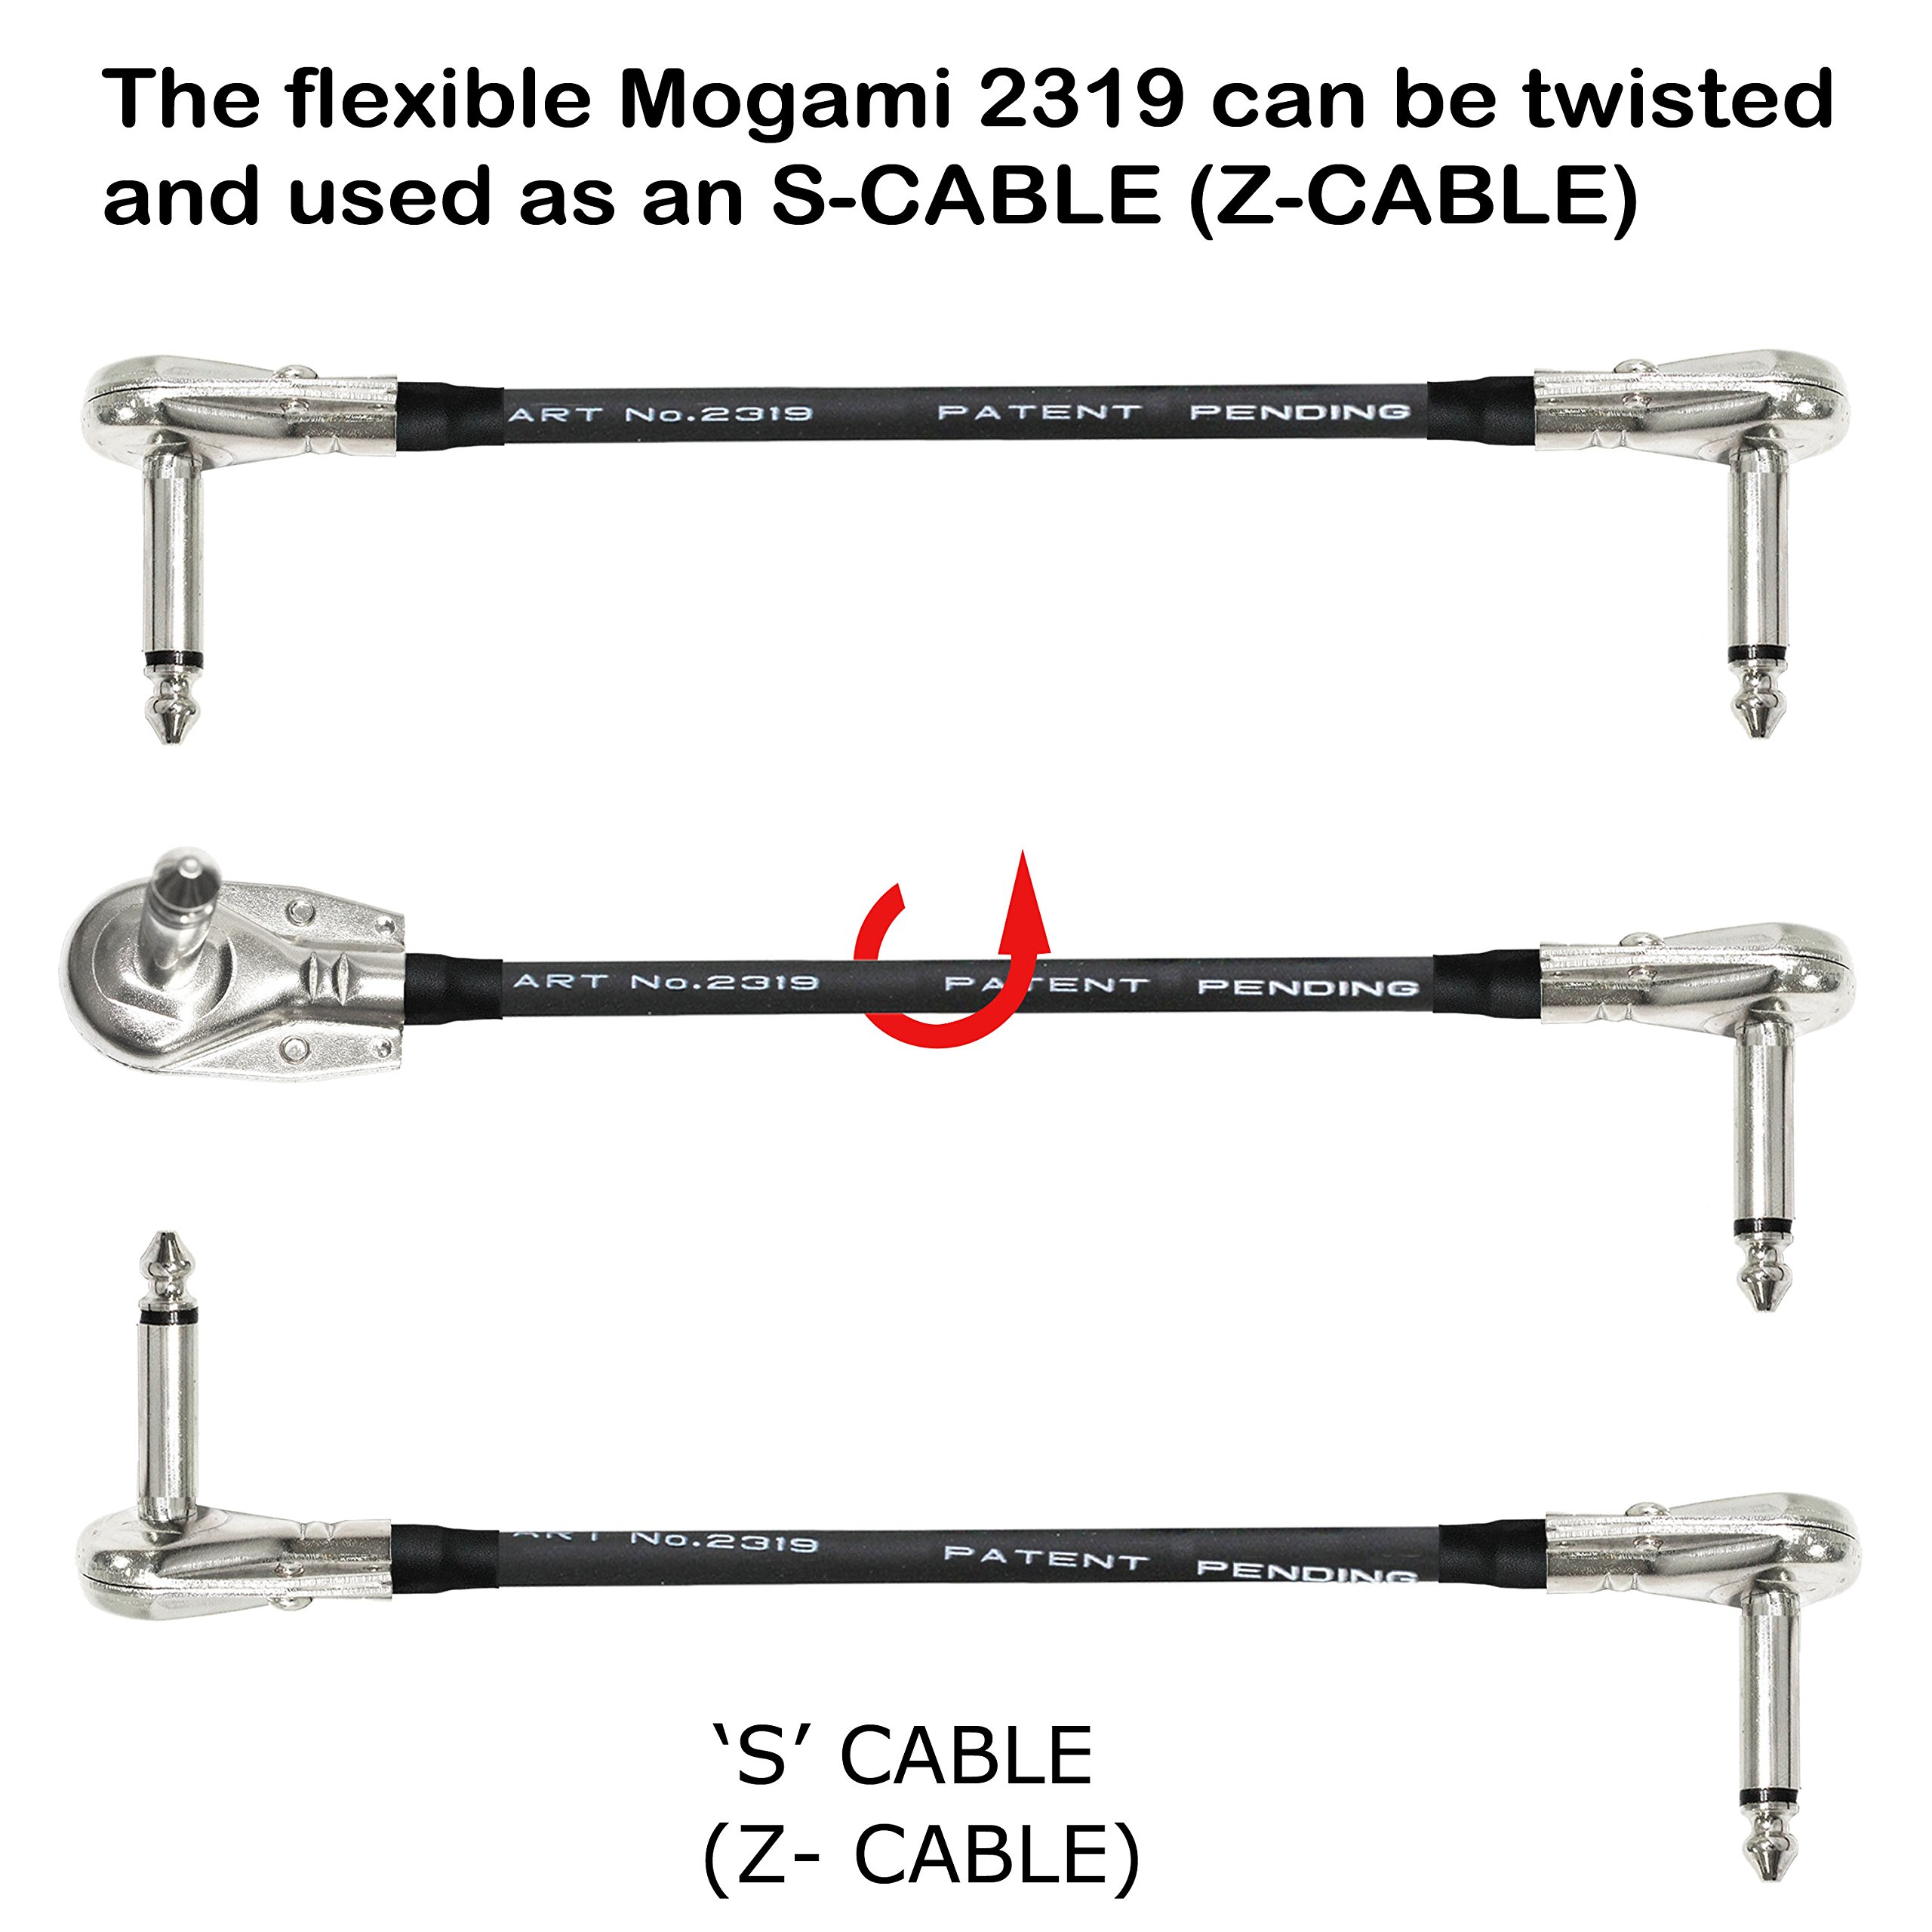 6 Units - 6 Inch - Pedal, Effects, Patch, instrument cable CUSTOM MADE By WORLDS BEST CABLES – made using Mogami 2319 wire and Eminence Nickel Plated ¼ inch (6.35mm) R/A Pancake type Connectors by WORLDS BEST CABLES (Image #5)